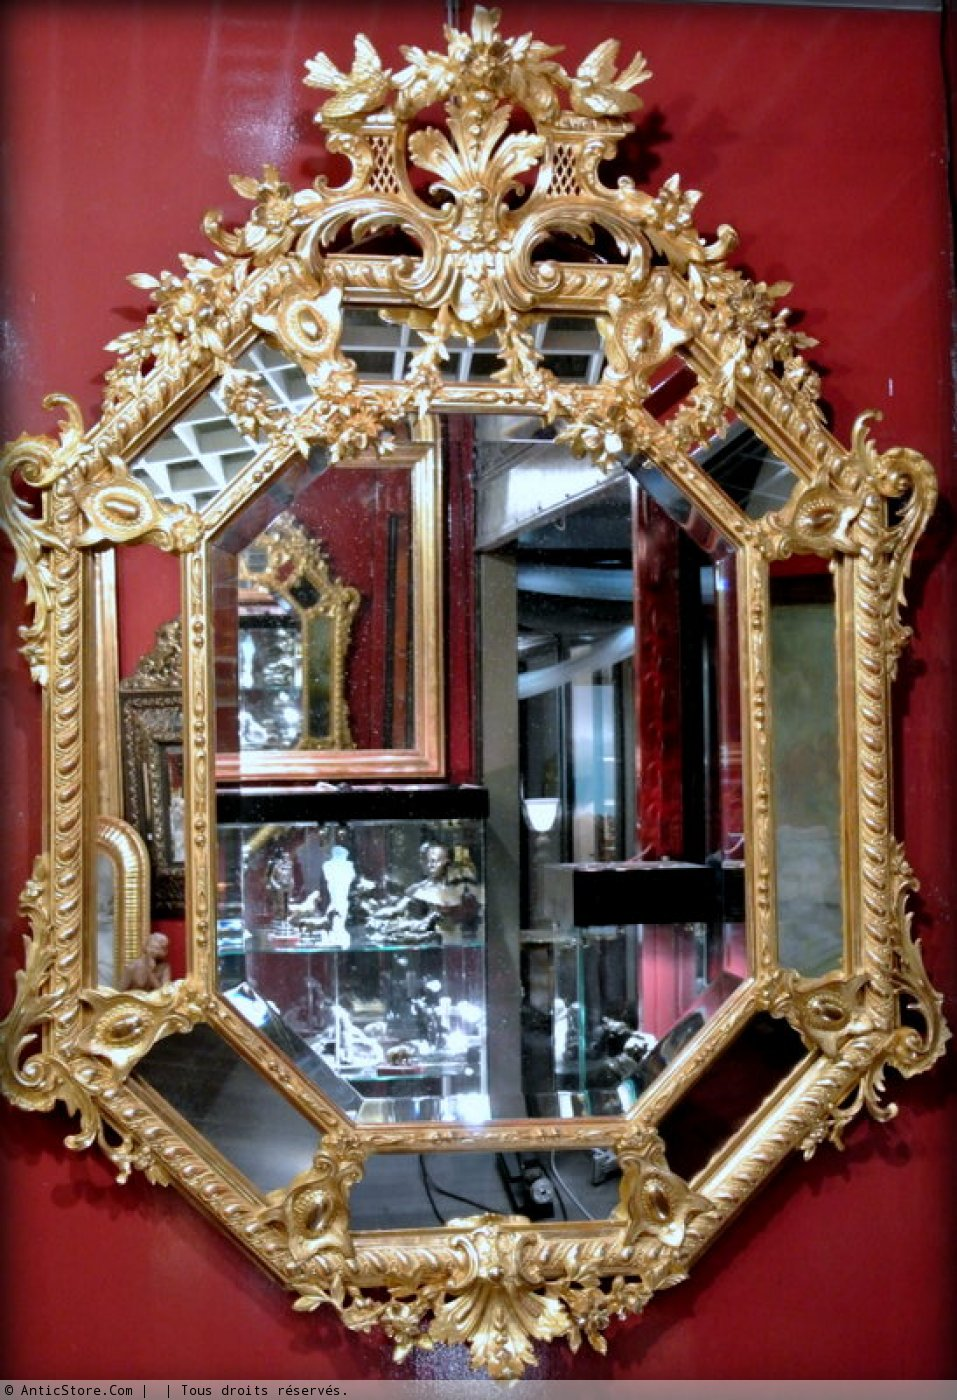 Miroir napol on iii r serves xixe si cle for Miroir napoleon iii